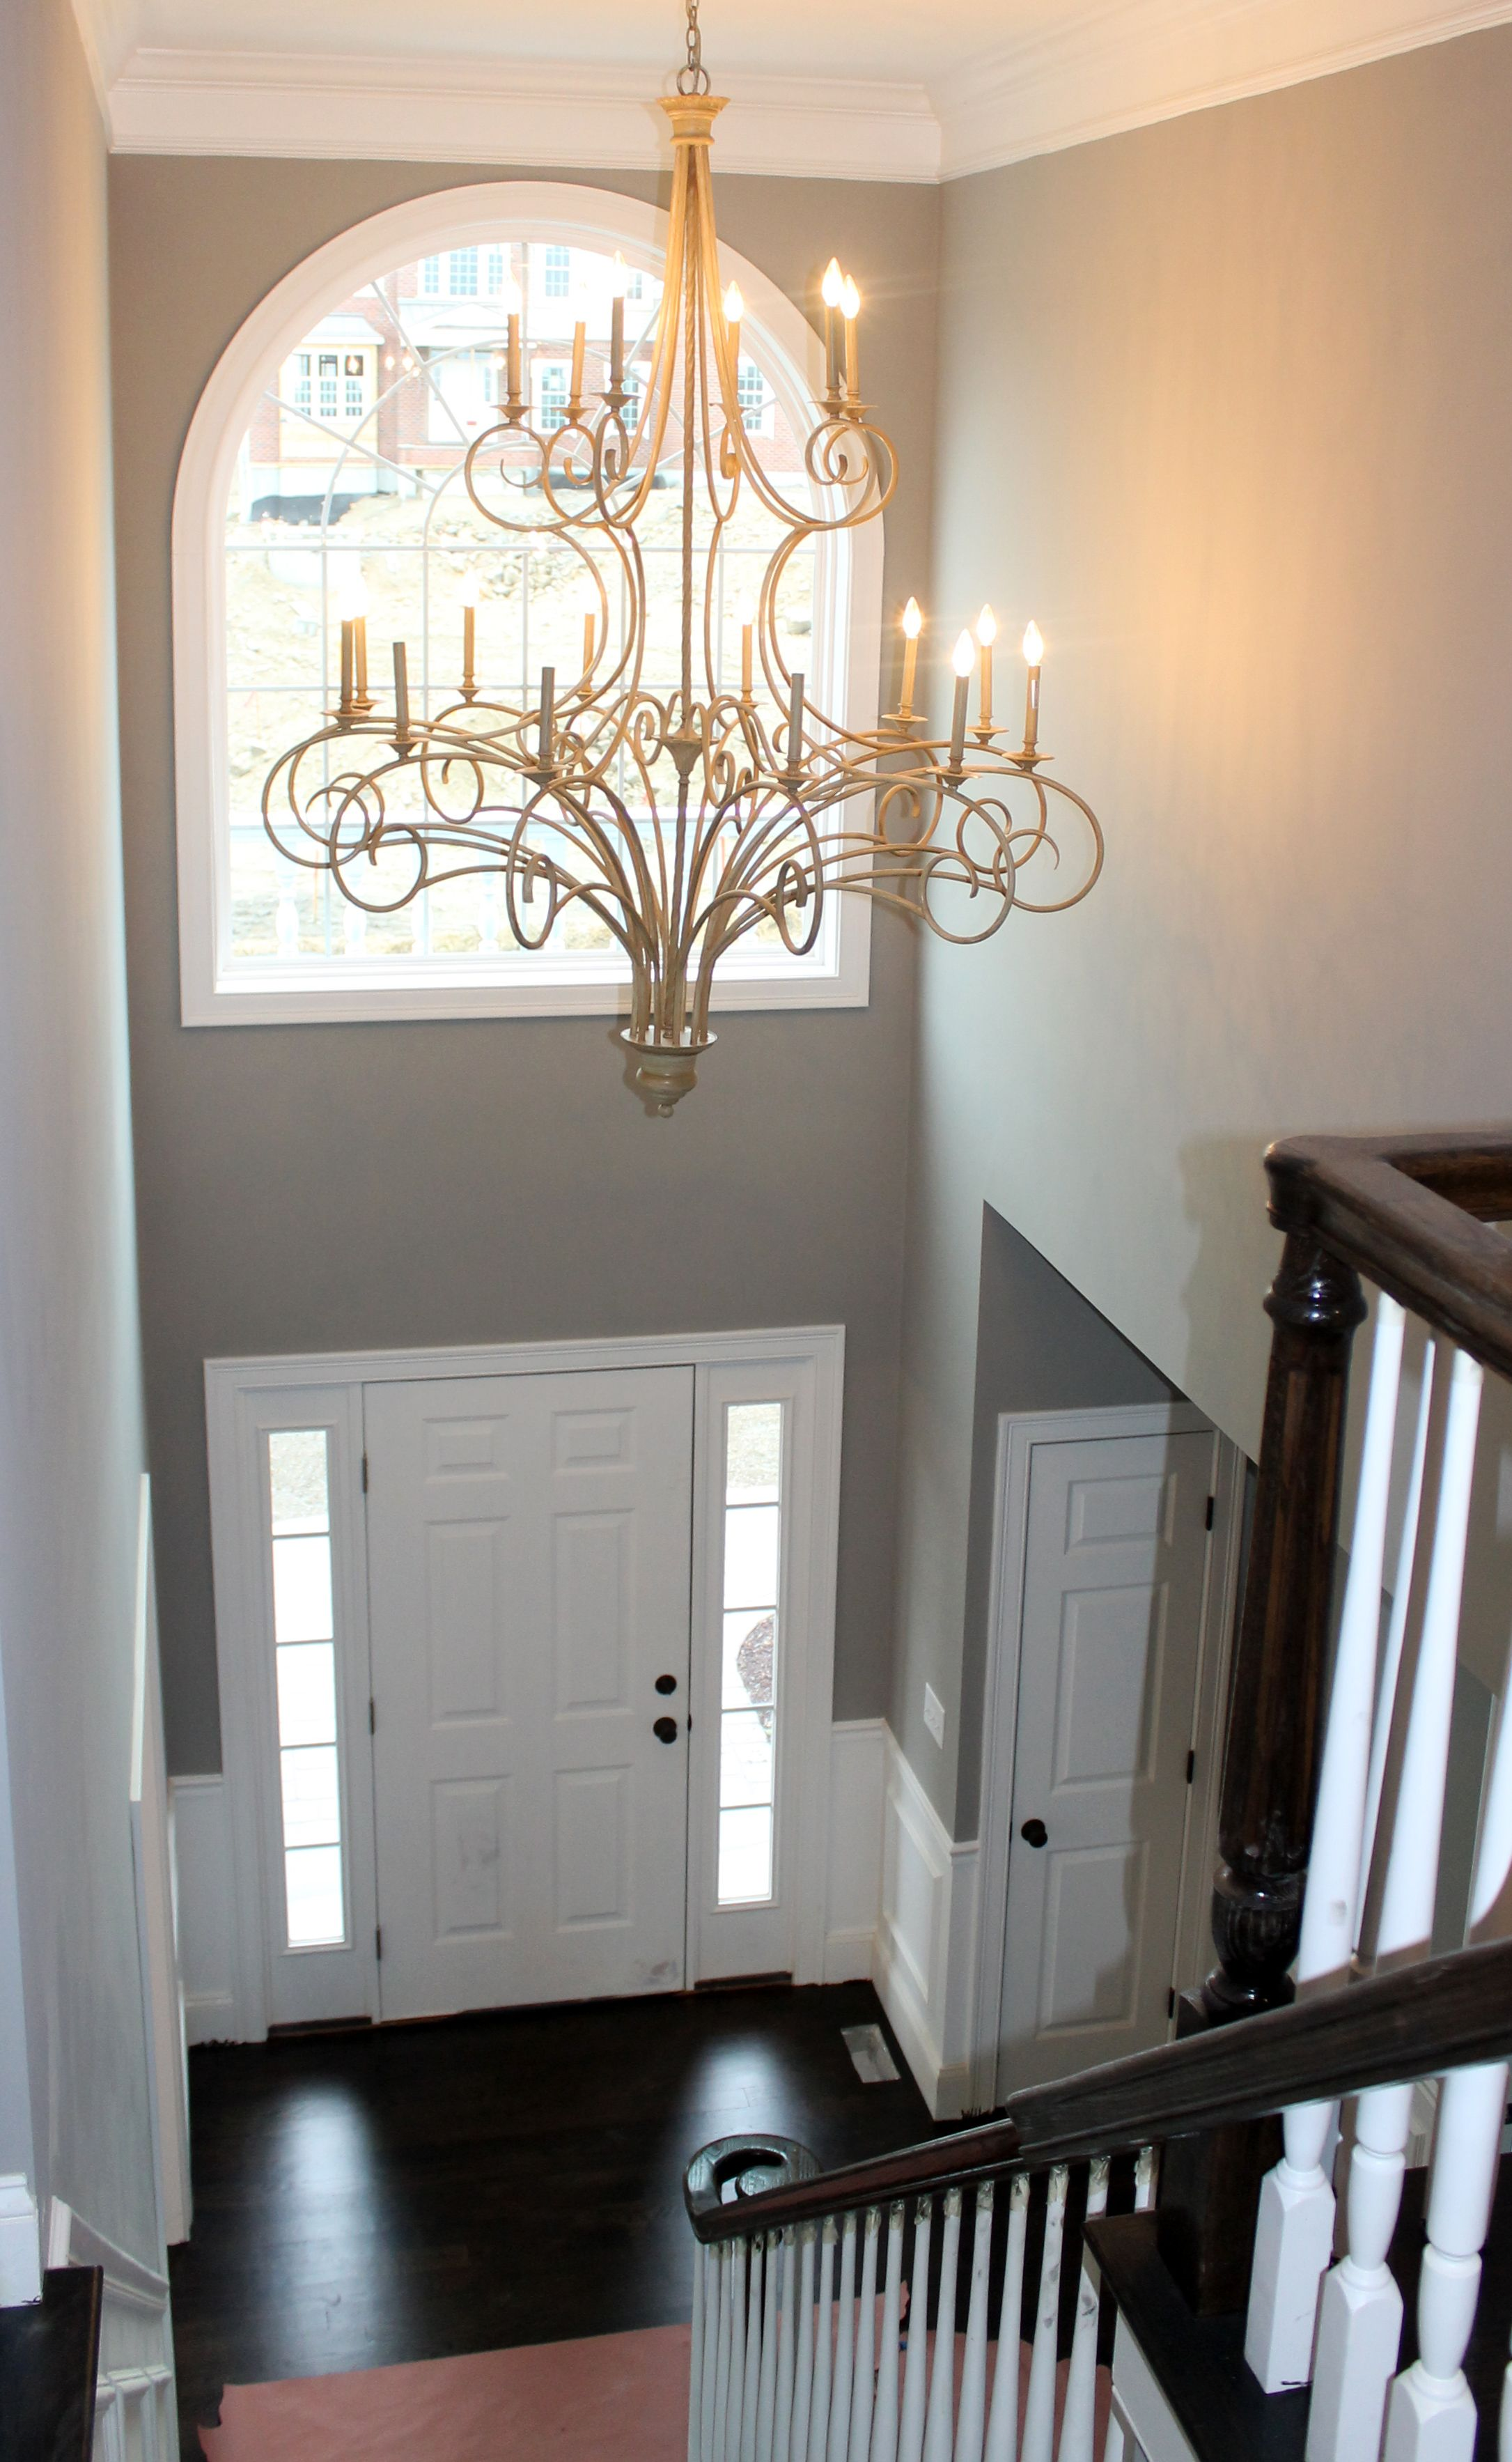 Two Story Entrance Foyer : Two story foyer new homes marlborough ma pinterest